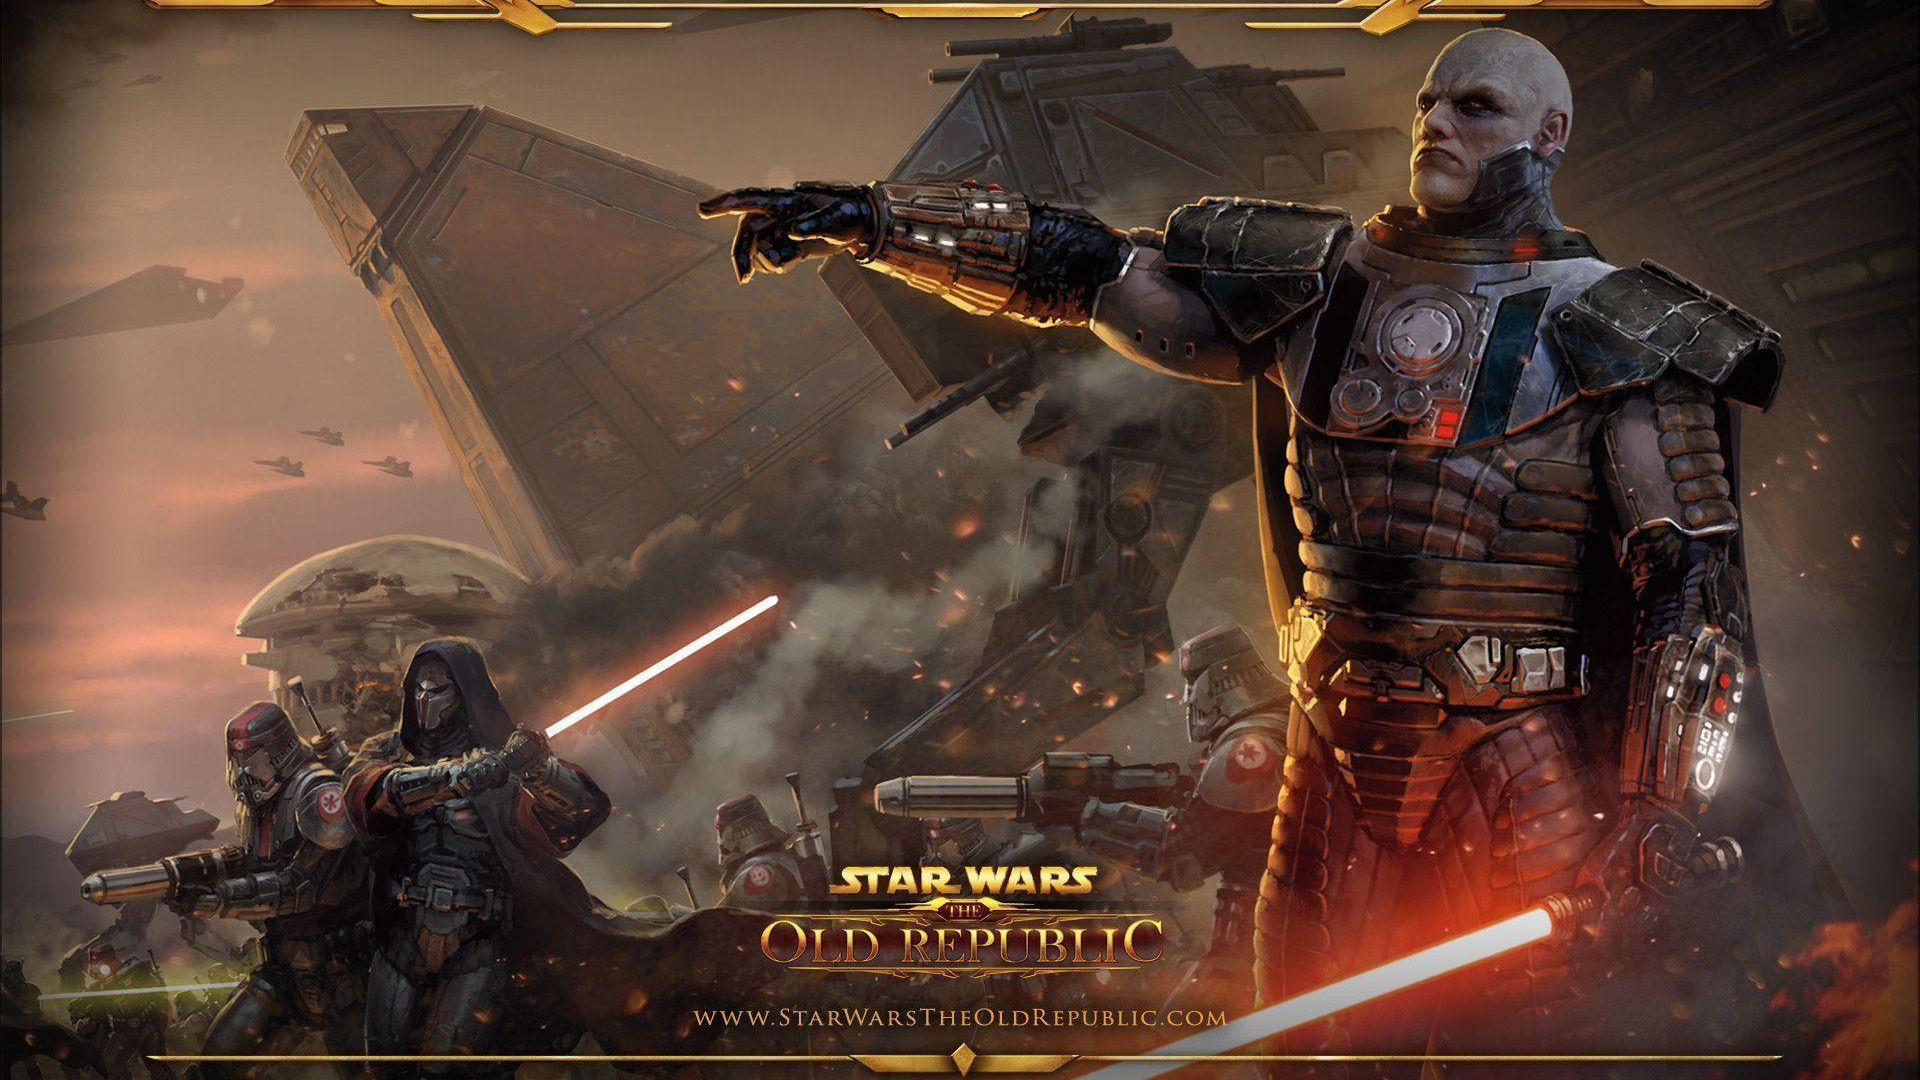 Free Download Star Wars The Old Republic Wallpapers 1920x1080